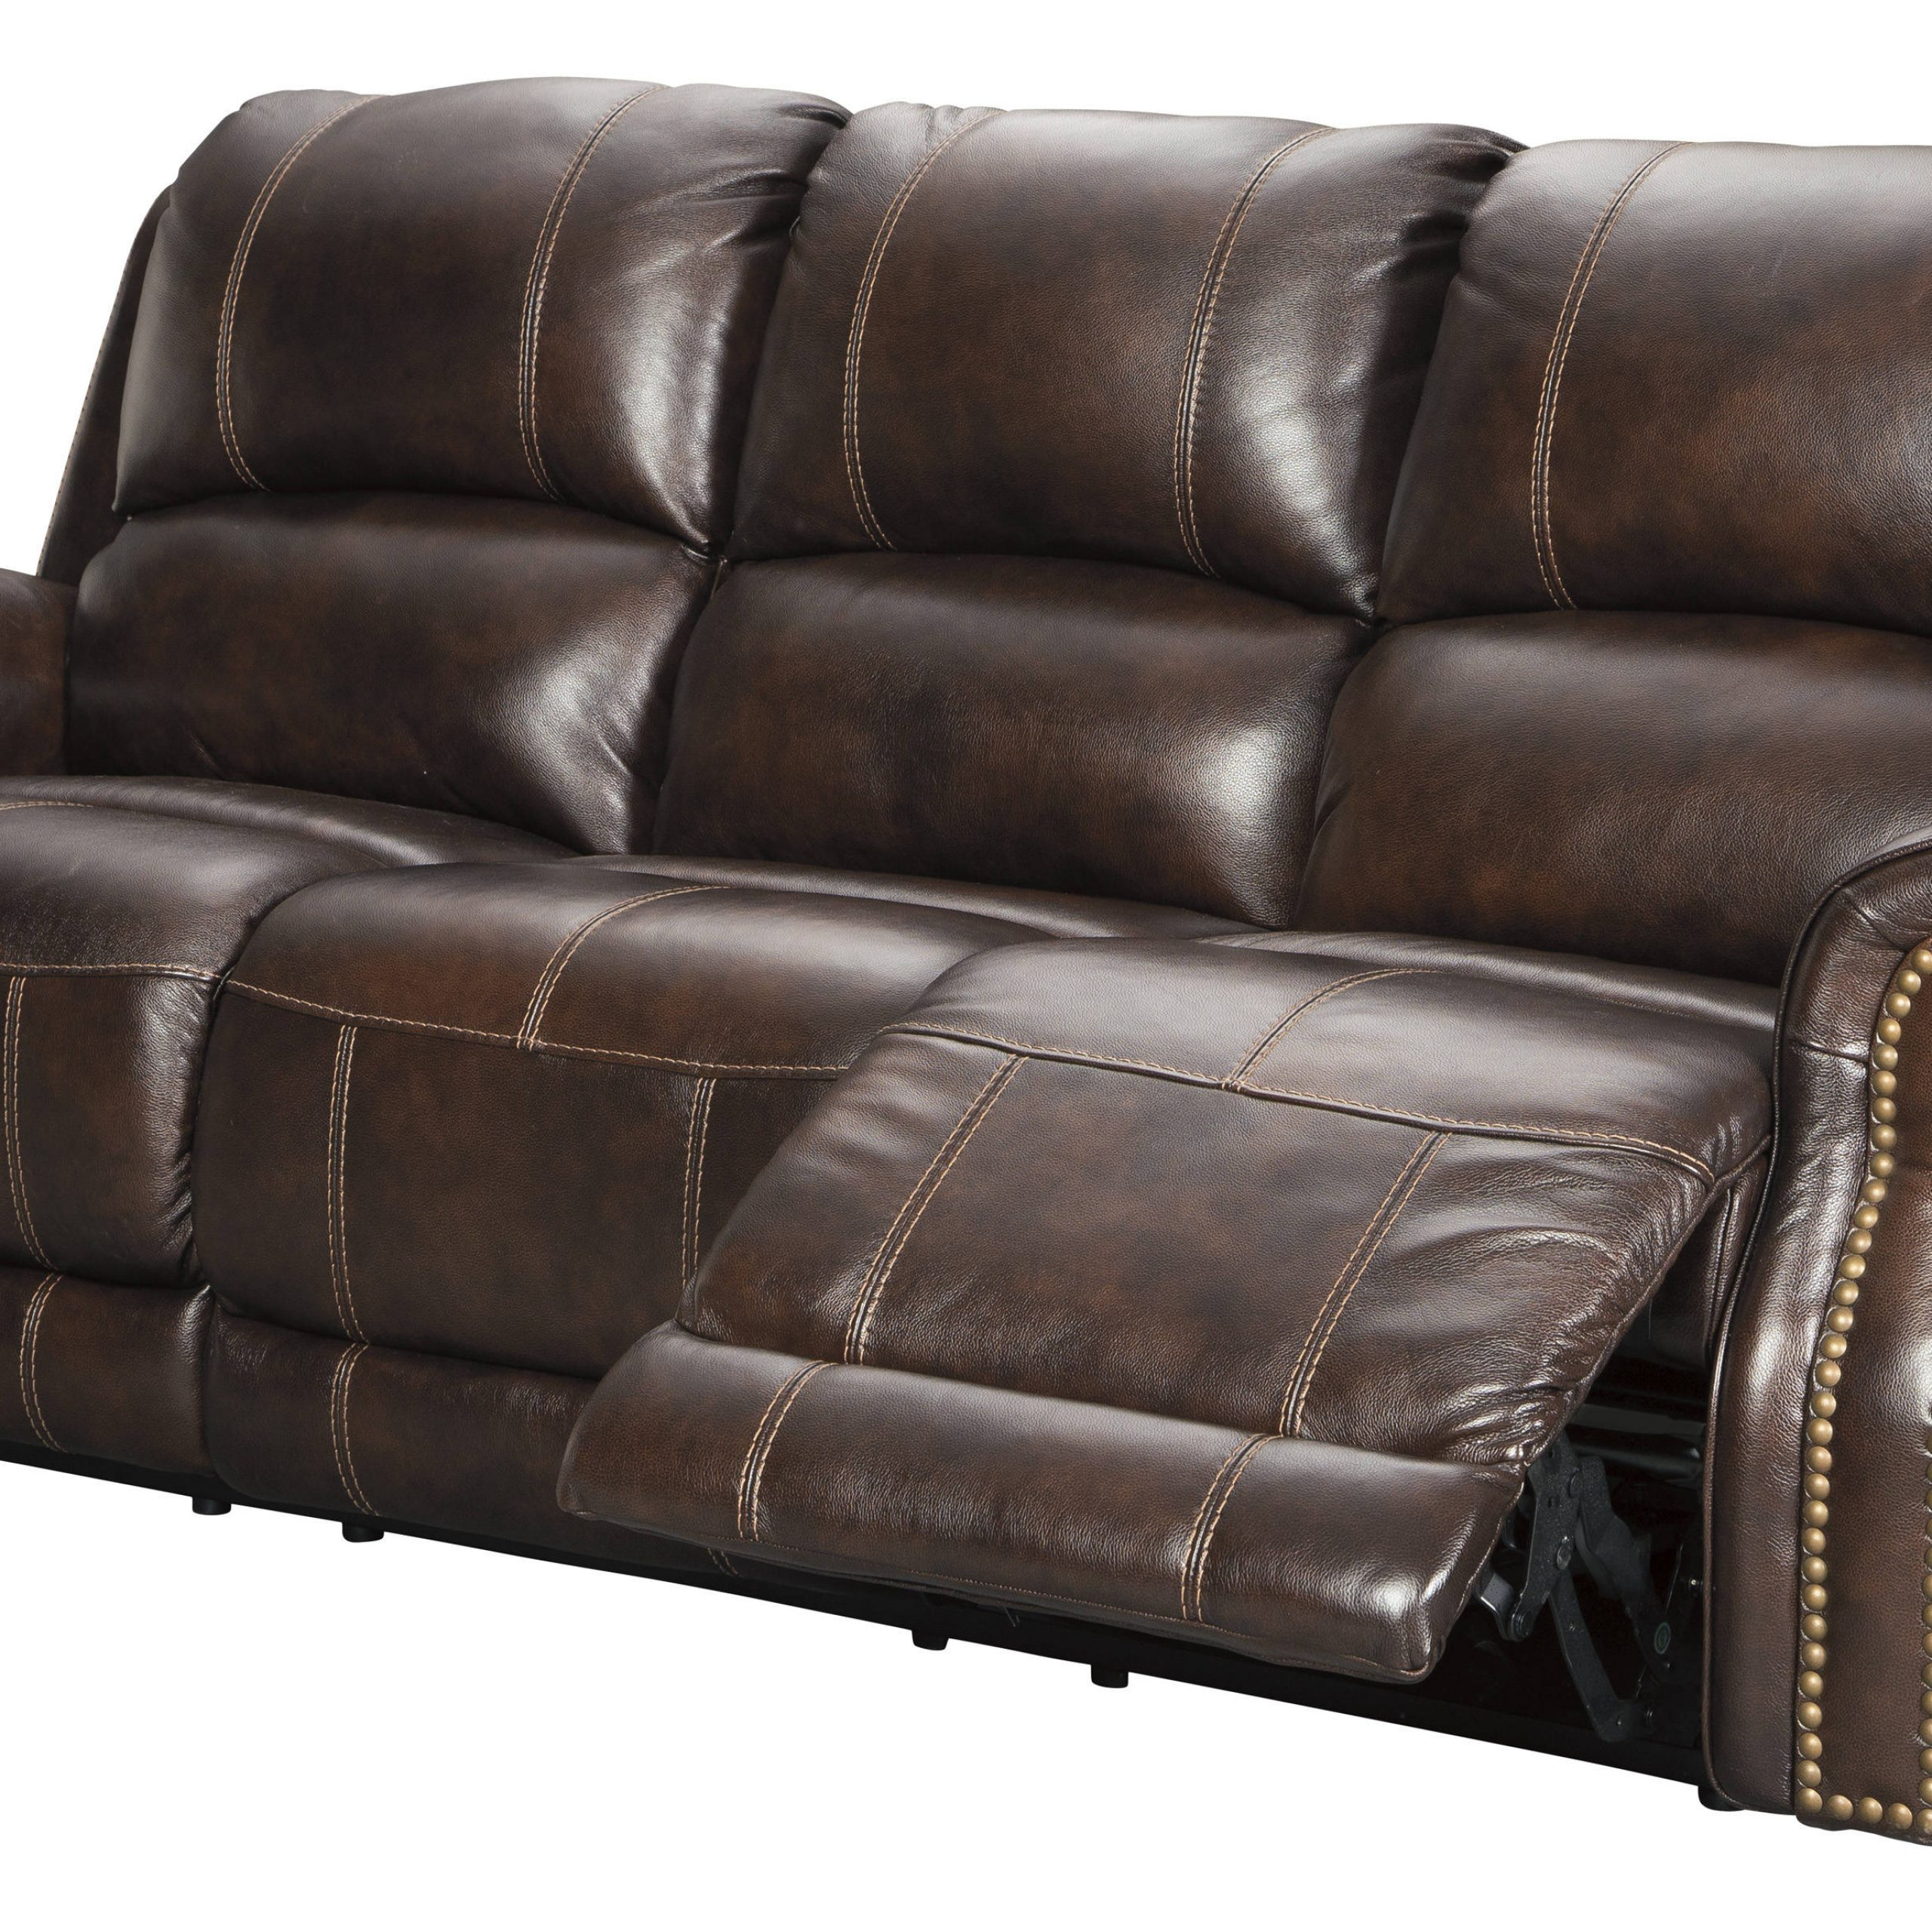 Ashley Furniture Buncrana Power Reclining Sofa With Throughout 2018 Raven Power Reclining Sofas (View 7 of 20)